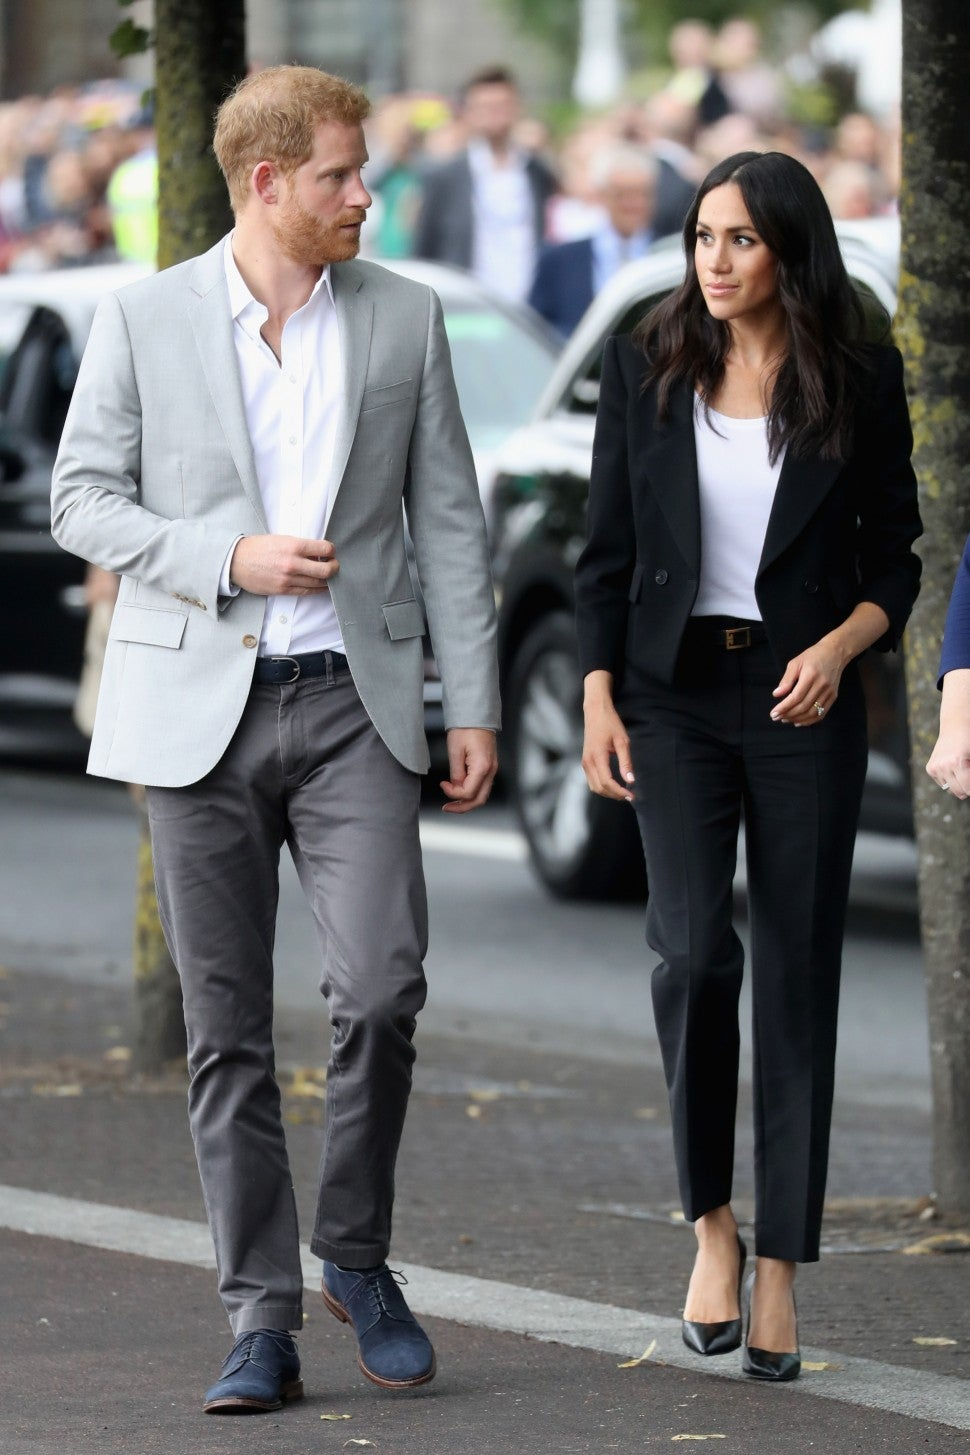 meghan markle looks like rachel zane from suits in her latest outfit entertainment tonight meghan markle looks like rachel zane